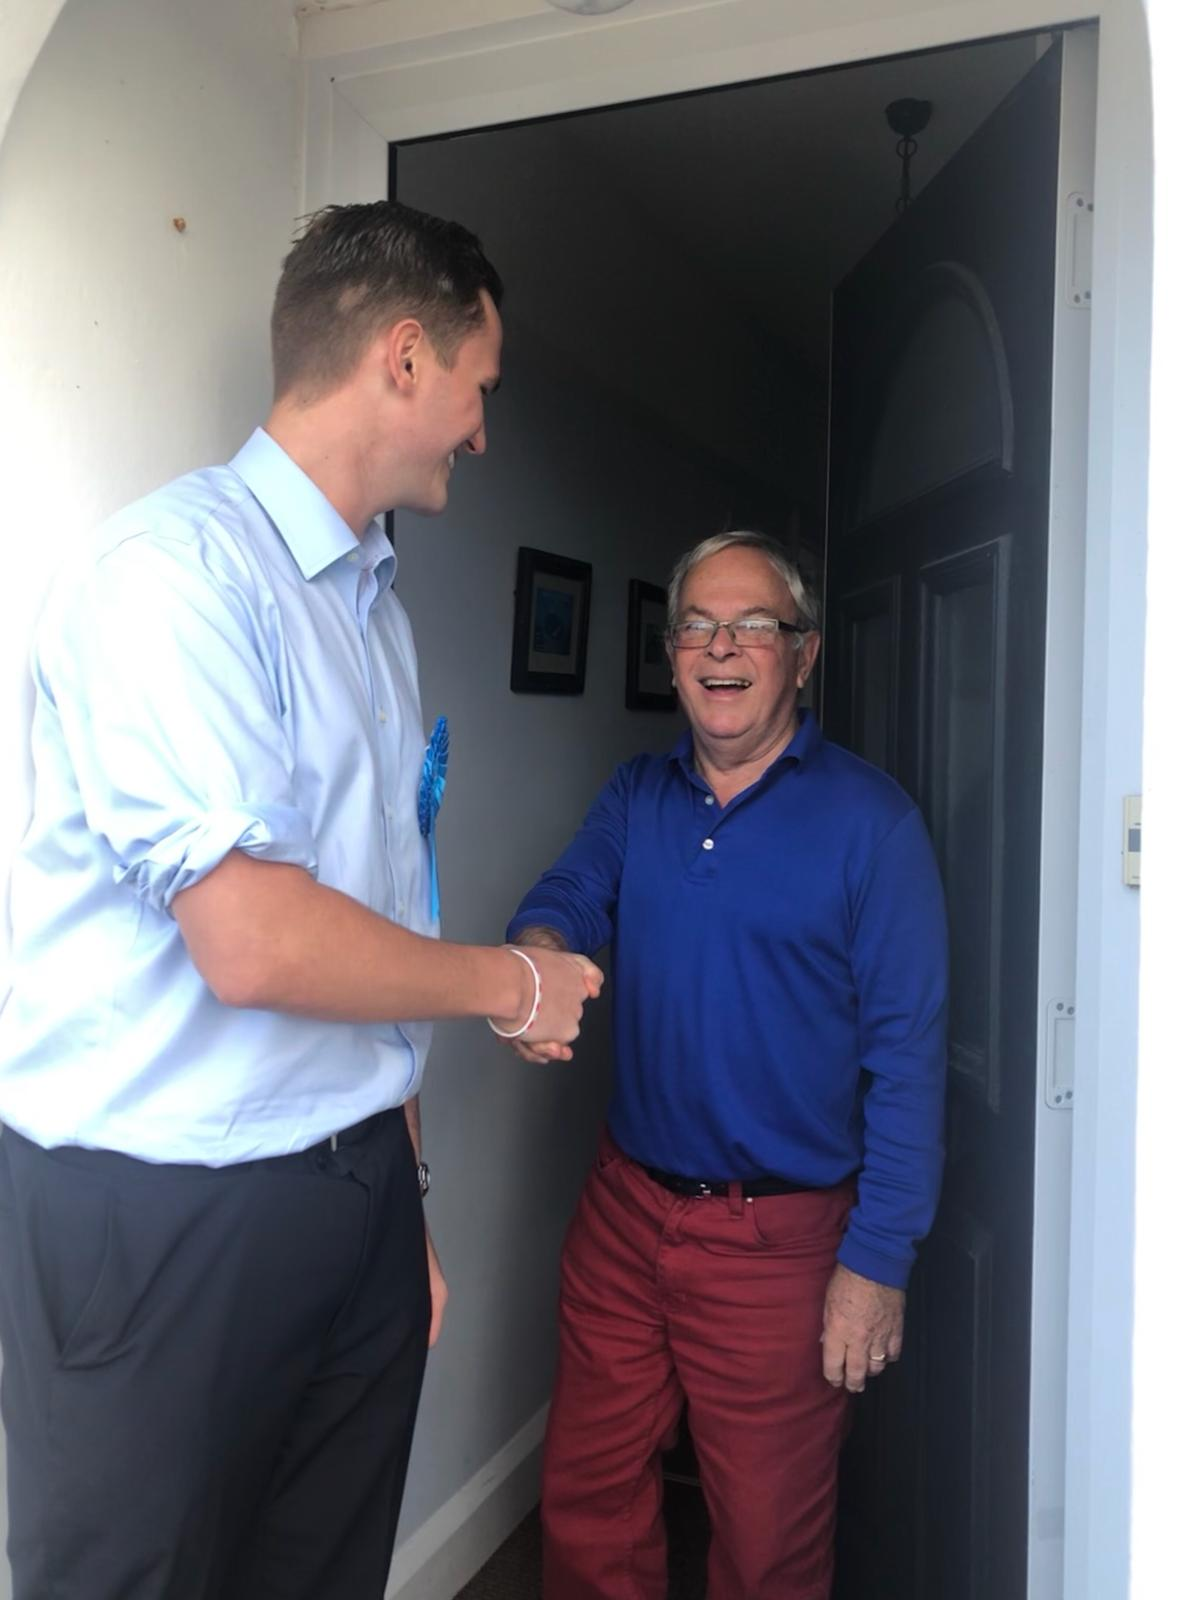 Joe Miller chats with a resident shortly after being selected as the Parliamentary Candidate for Brighton Kemptown & Peacehaven.